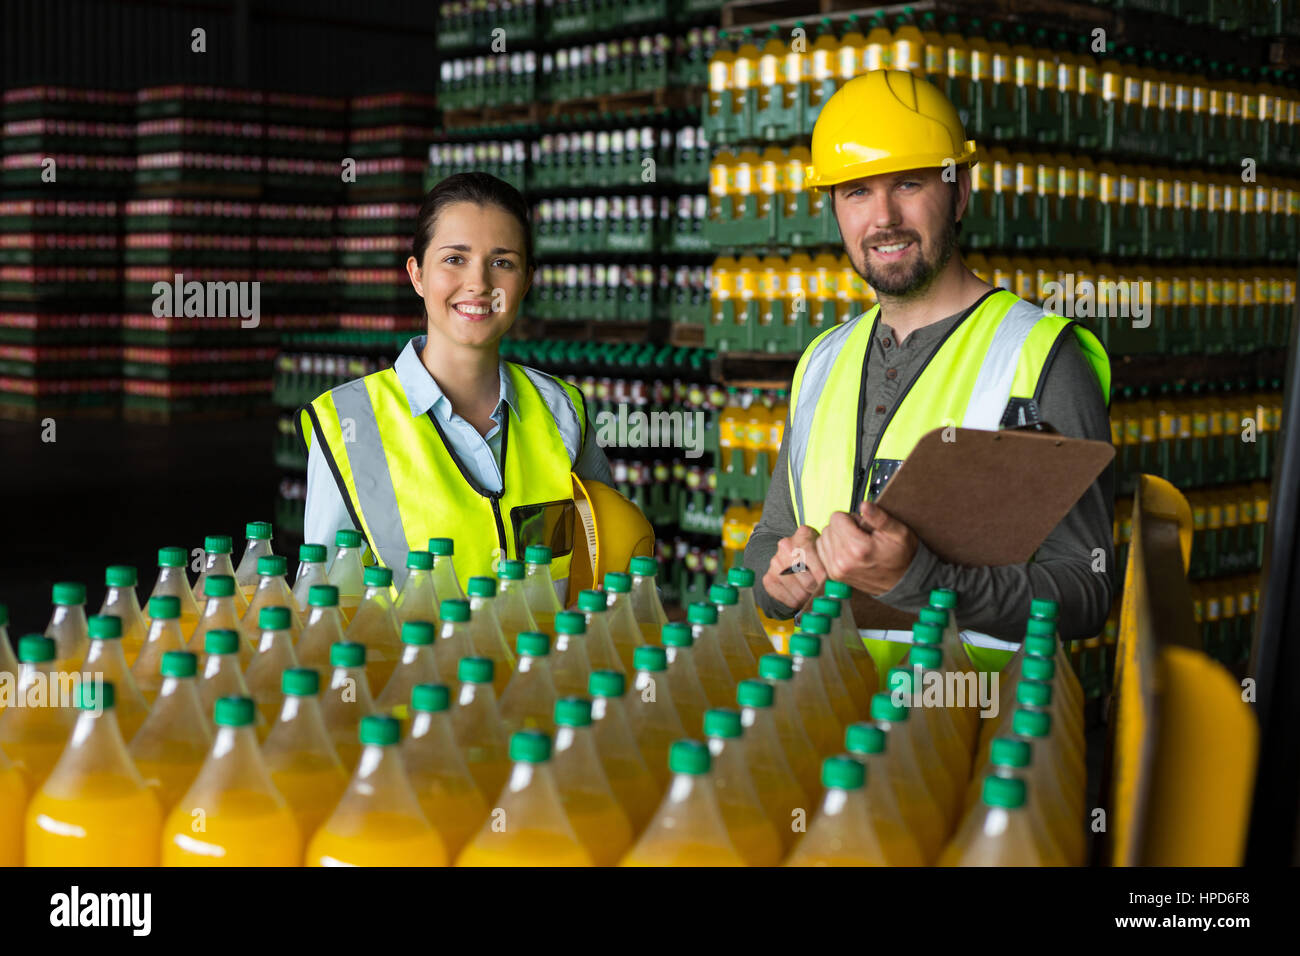 Portrait of two factory workers monitoring cold drink bottles at drinks production factory Stock Photo